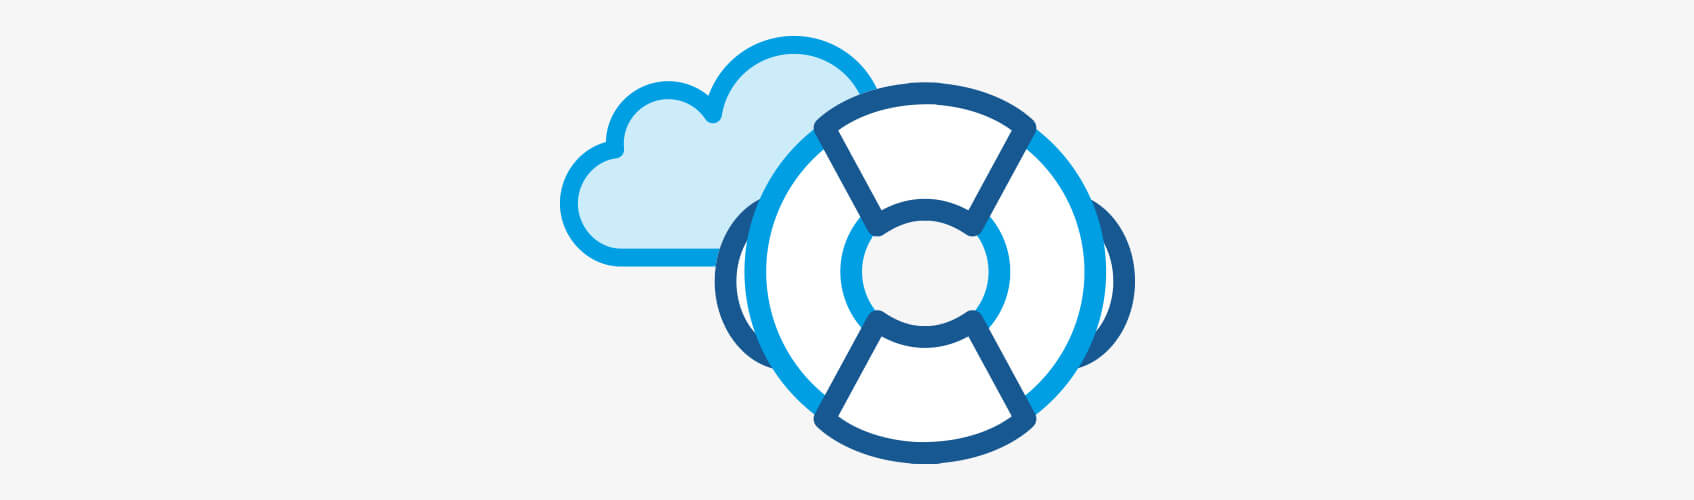 VMware vCloud Availability Blog Header Image